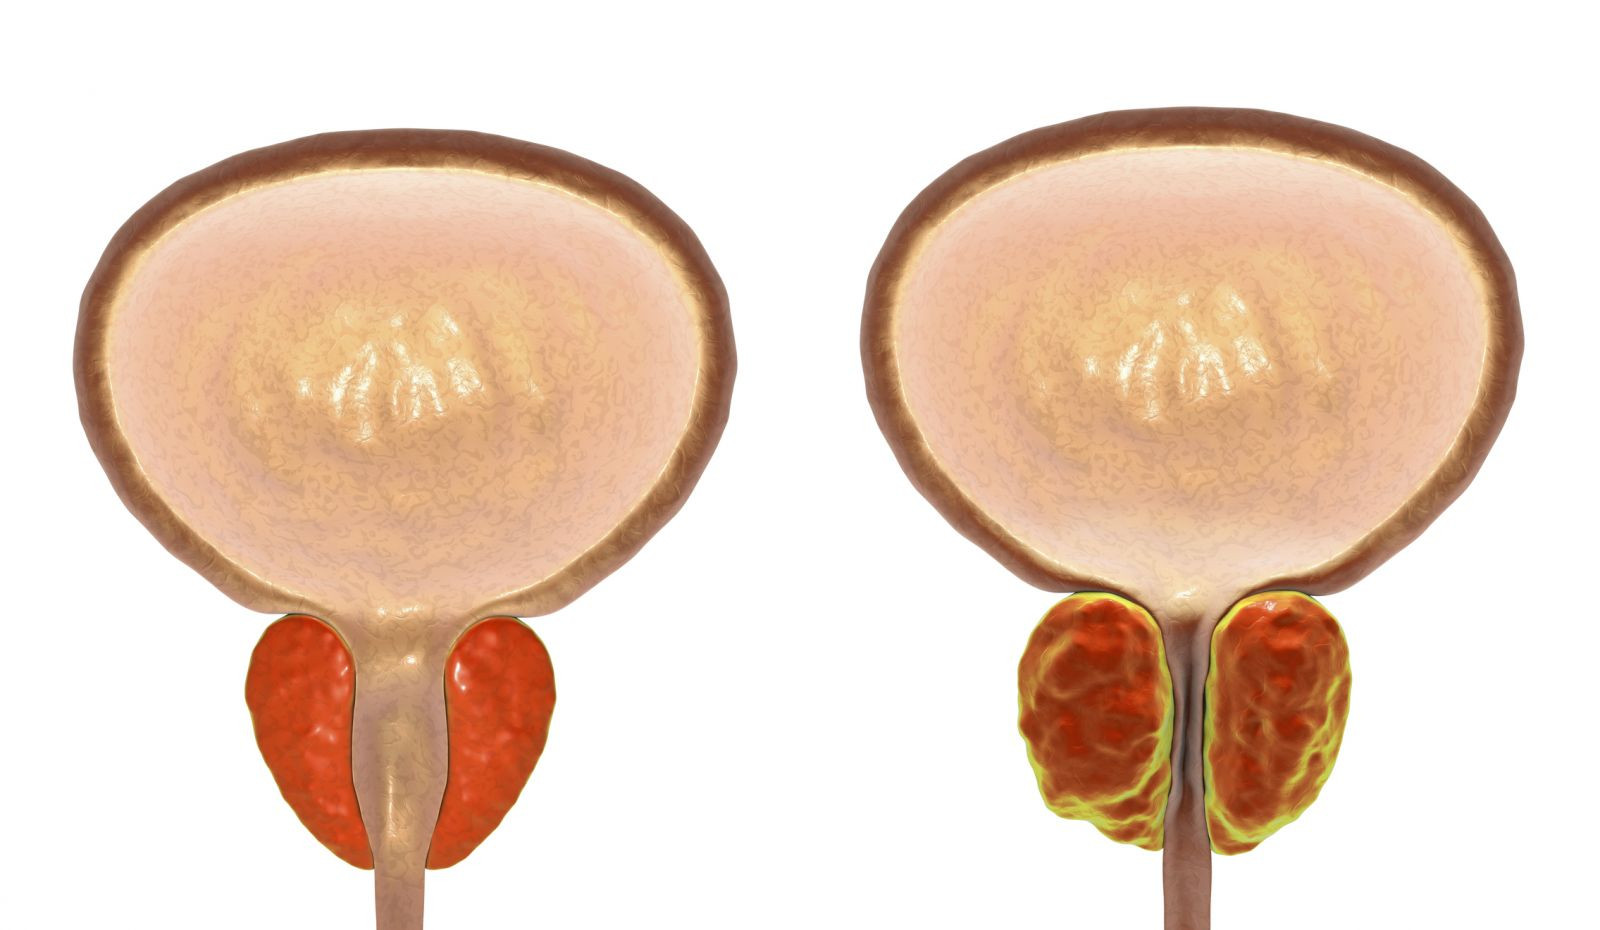 An enlarged prostate gland and incontinence